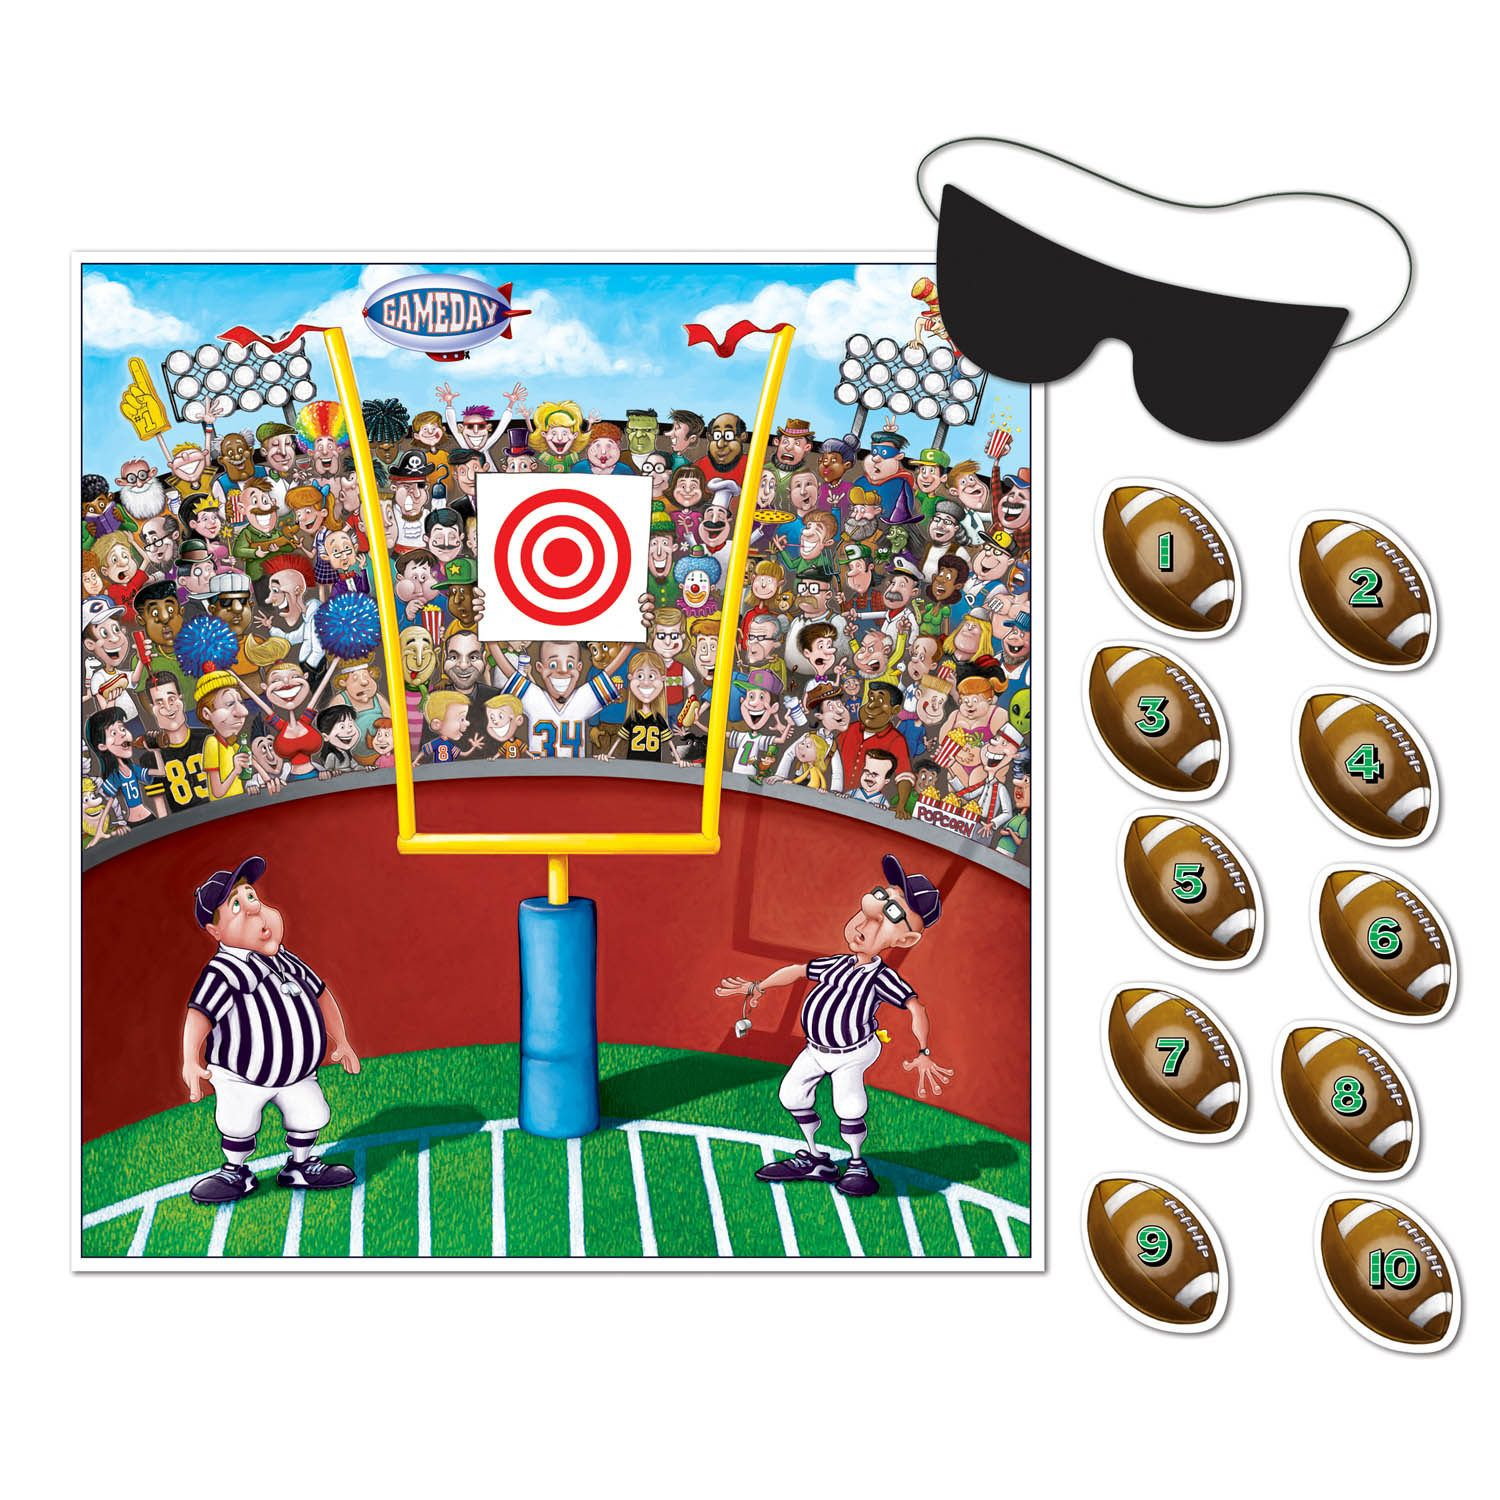 Pin The Ball Football Game Will Have Everyone Parti Ting Grab This For Your Party And Watch The Fun Come Alive